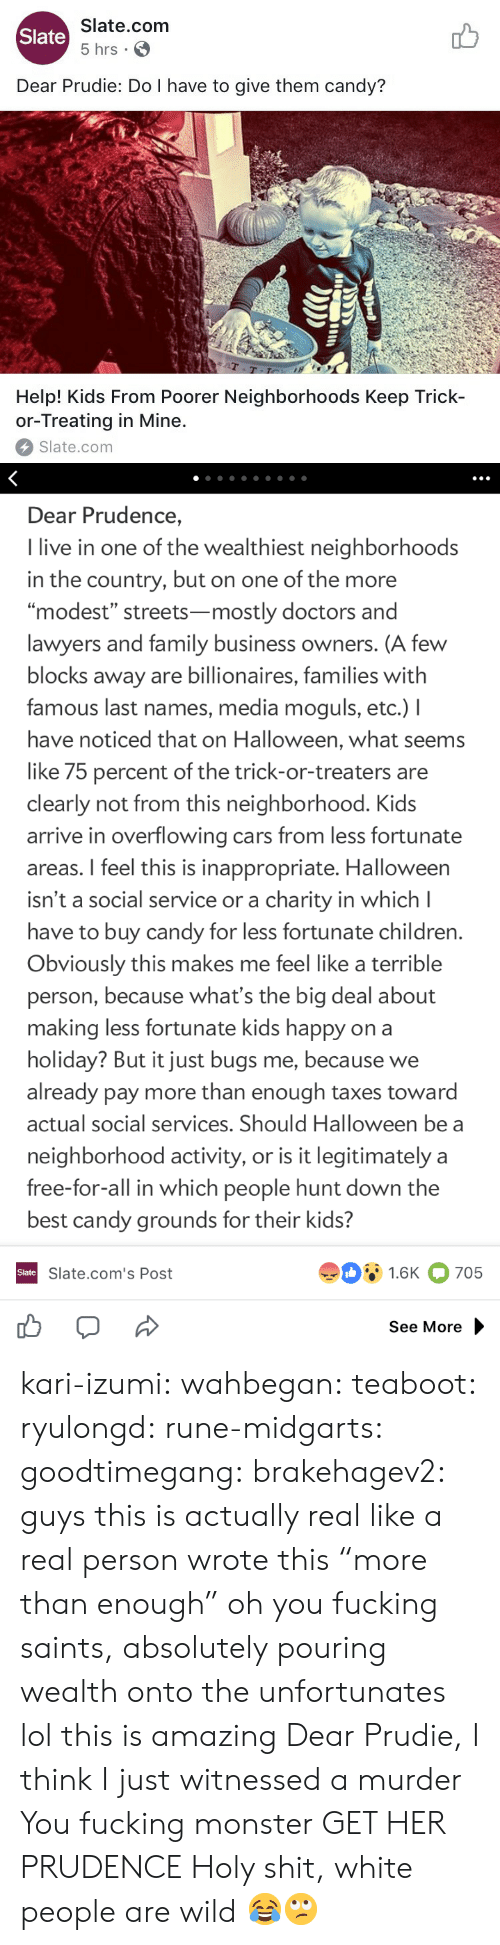 """last names: Slate.com  5 hrs .  Slate  Dear Prudie: Do I have to give them candy?  aT  T-T  Help! Kids From Poorer Neighborhoods Keep Trick-  or-Treating in Mine.  Slate.com   Dear Prudence,  I live in one of the wealthiest neighborhoods  in the country, but on one of the more  """"modest"""" streets-mostly doctors and  lawyers and family business owners. (A few  blocks away are billionaires, families with  famous last names, media moguls, etc.) I  have noticed that on Halloween, what seems  like 75 percent of the trick-or-treaters are  clearly not from this neighborhood. Kids  arrive in overflowing cars from less fortunate  areas. I feel this is inappropriate. Halloween  isn't a social service or a charity in which l  have to buy candy for less fortunate children  Obviously this makes me feel like a terrible  person, because what's the big deal about  making less fortunate kids happy on a  holiday? But it just bugs me, because we  already pay more than enough taxes toward  actual social services. Should Halloween be a  neighborhood activity, or is it legitimately a  free-for-all in which people hunt down the  best candy grounds for their kids?  91.6K 705  Slate  Slate.com's Post  See More kari-izumi: wahbegan:  teaboot:  ryulongd:  rune-midgarts:  goodtimegang:  brakehagev2:  guys this is actually real like a real person wrote this  """"more than enough"""" oh you fucking saints, absolutely pouring wealth onto the unfortunates   lol this is amazing   Dear Prudie, I think I just witnessed a murder  You fucking monster  GET HER PRUDENCE   Holy shit, white people are wild 😂🙄"""